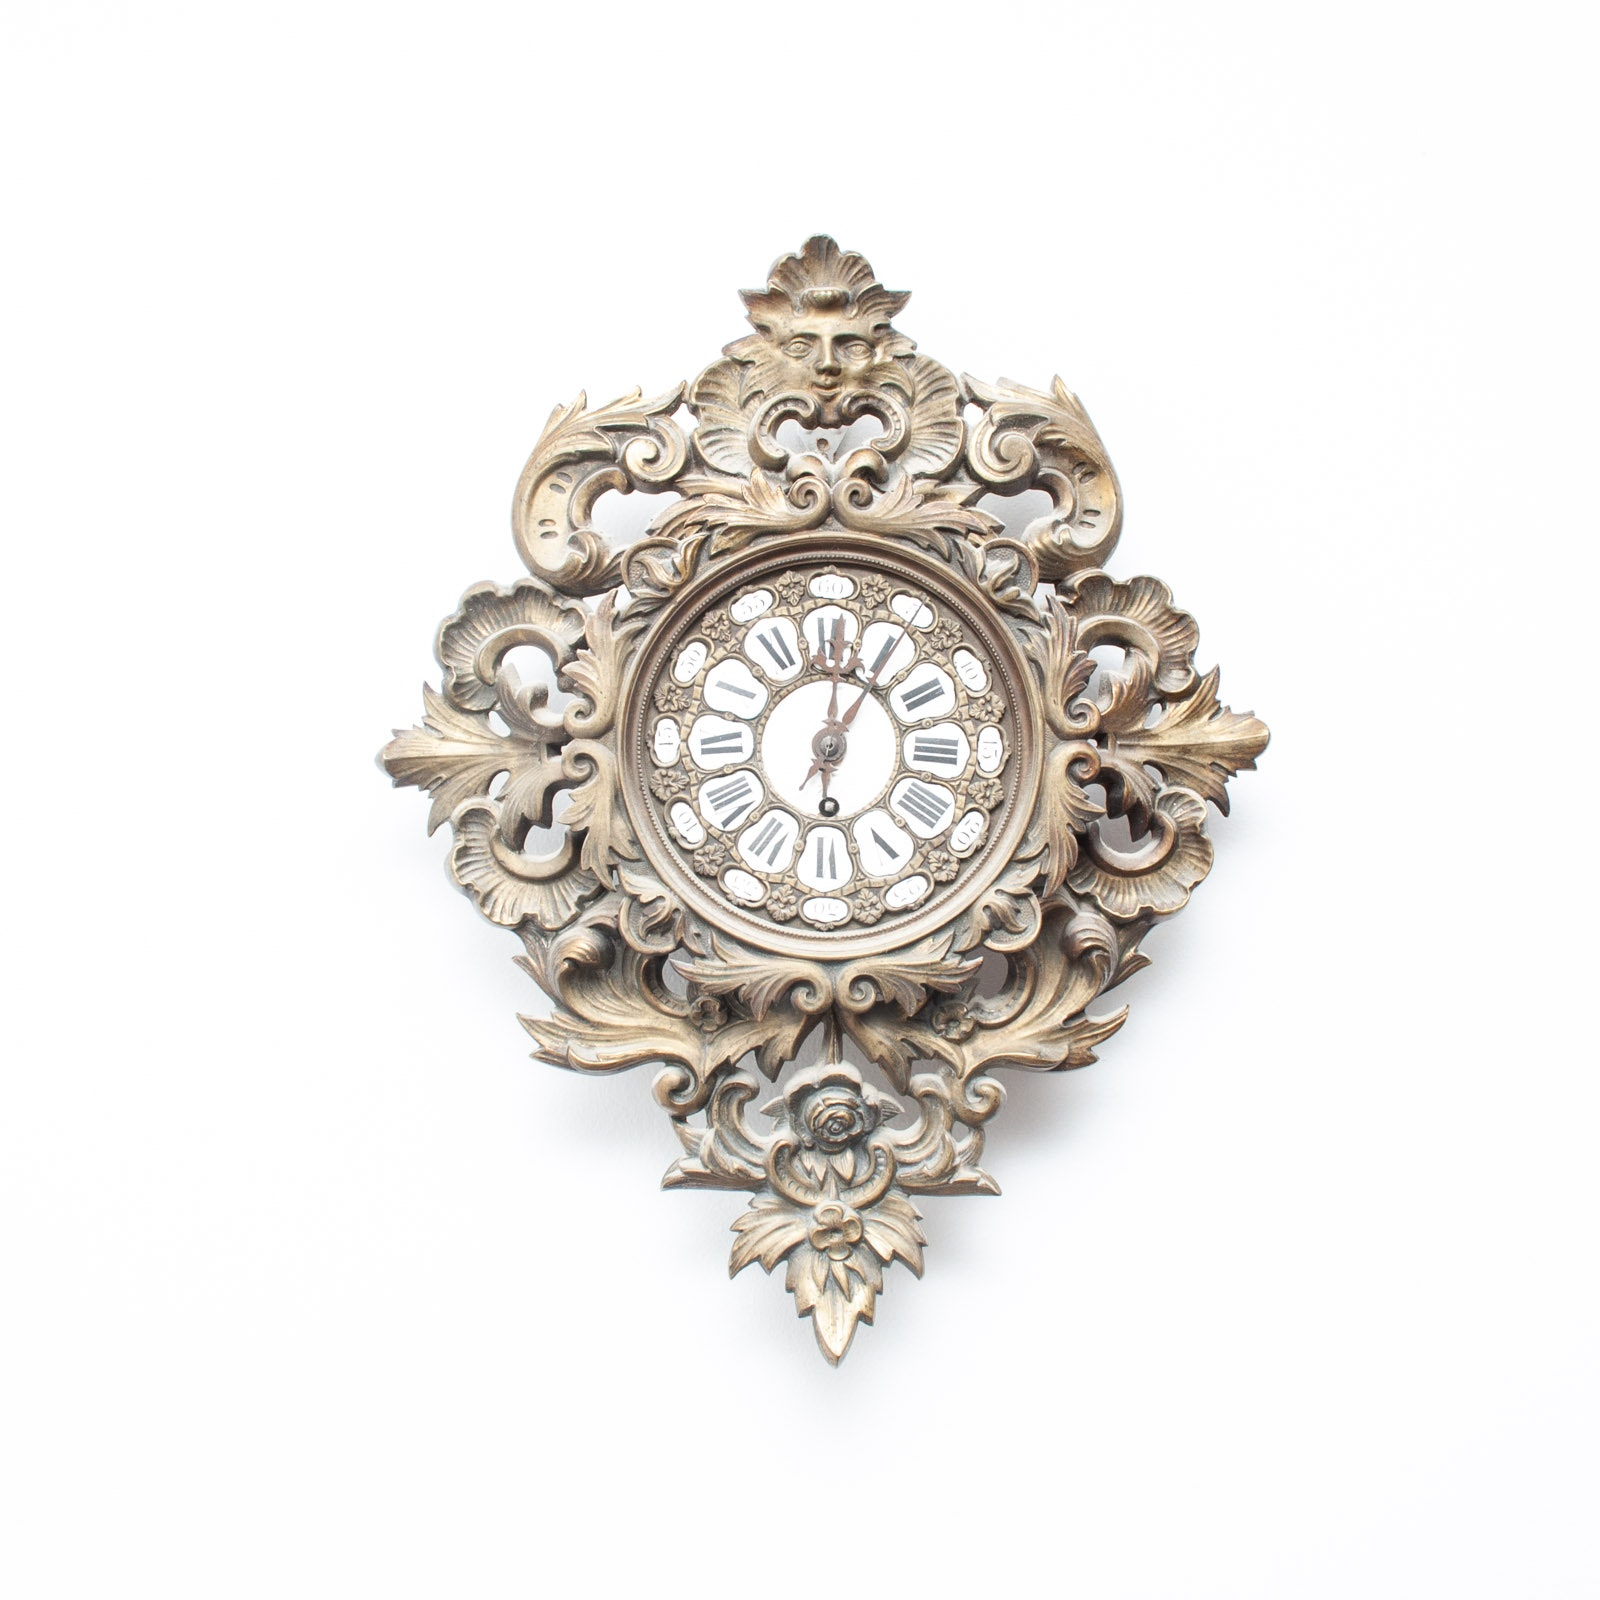 Antique Ornate Porcelain and Brass Toned Metal Wall Clock